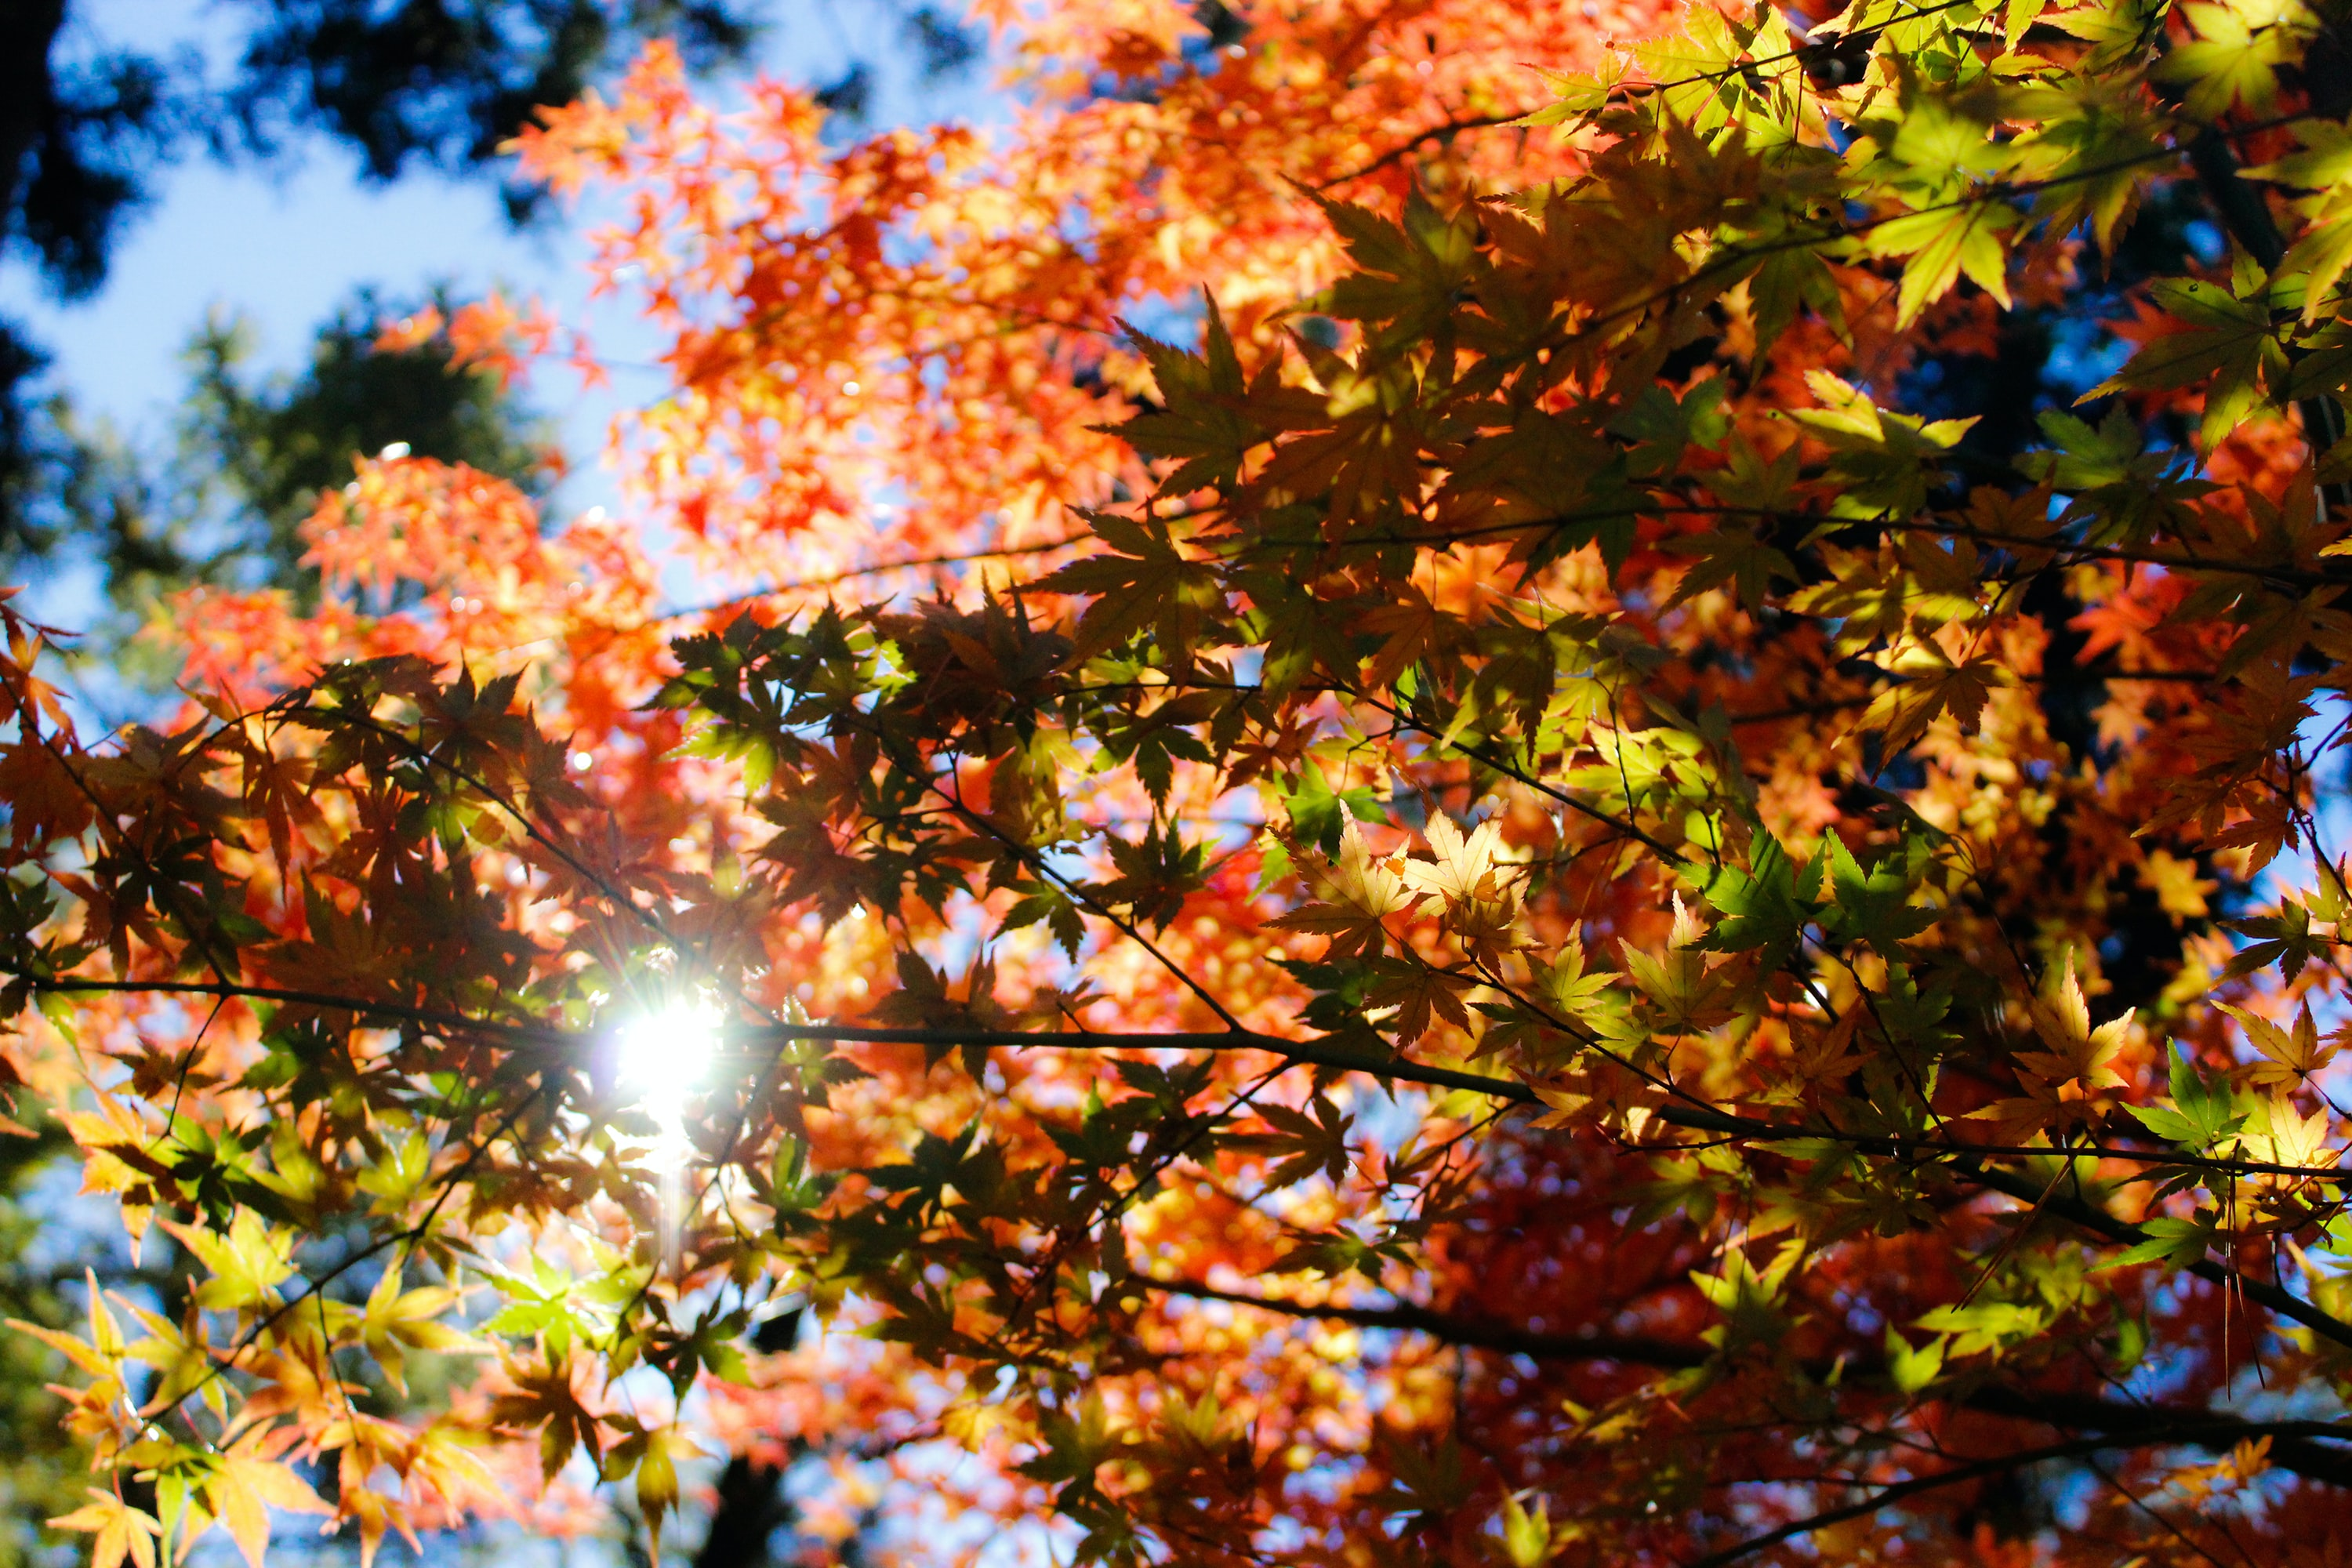 maple tree under clear skies at daytime